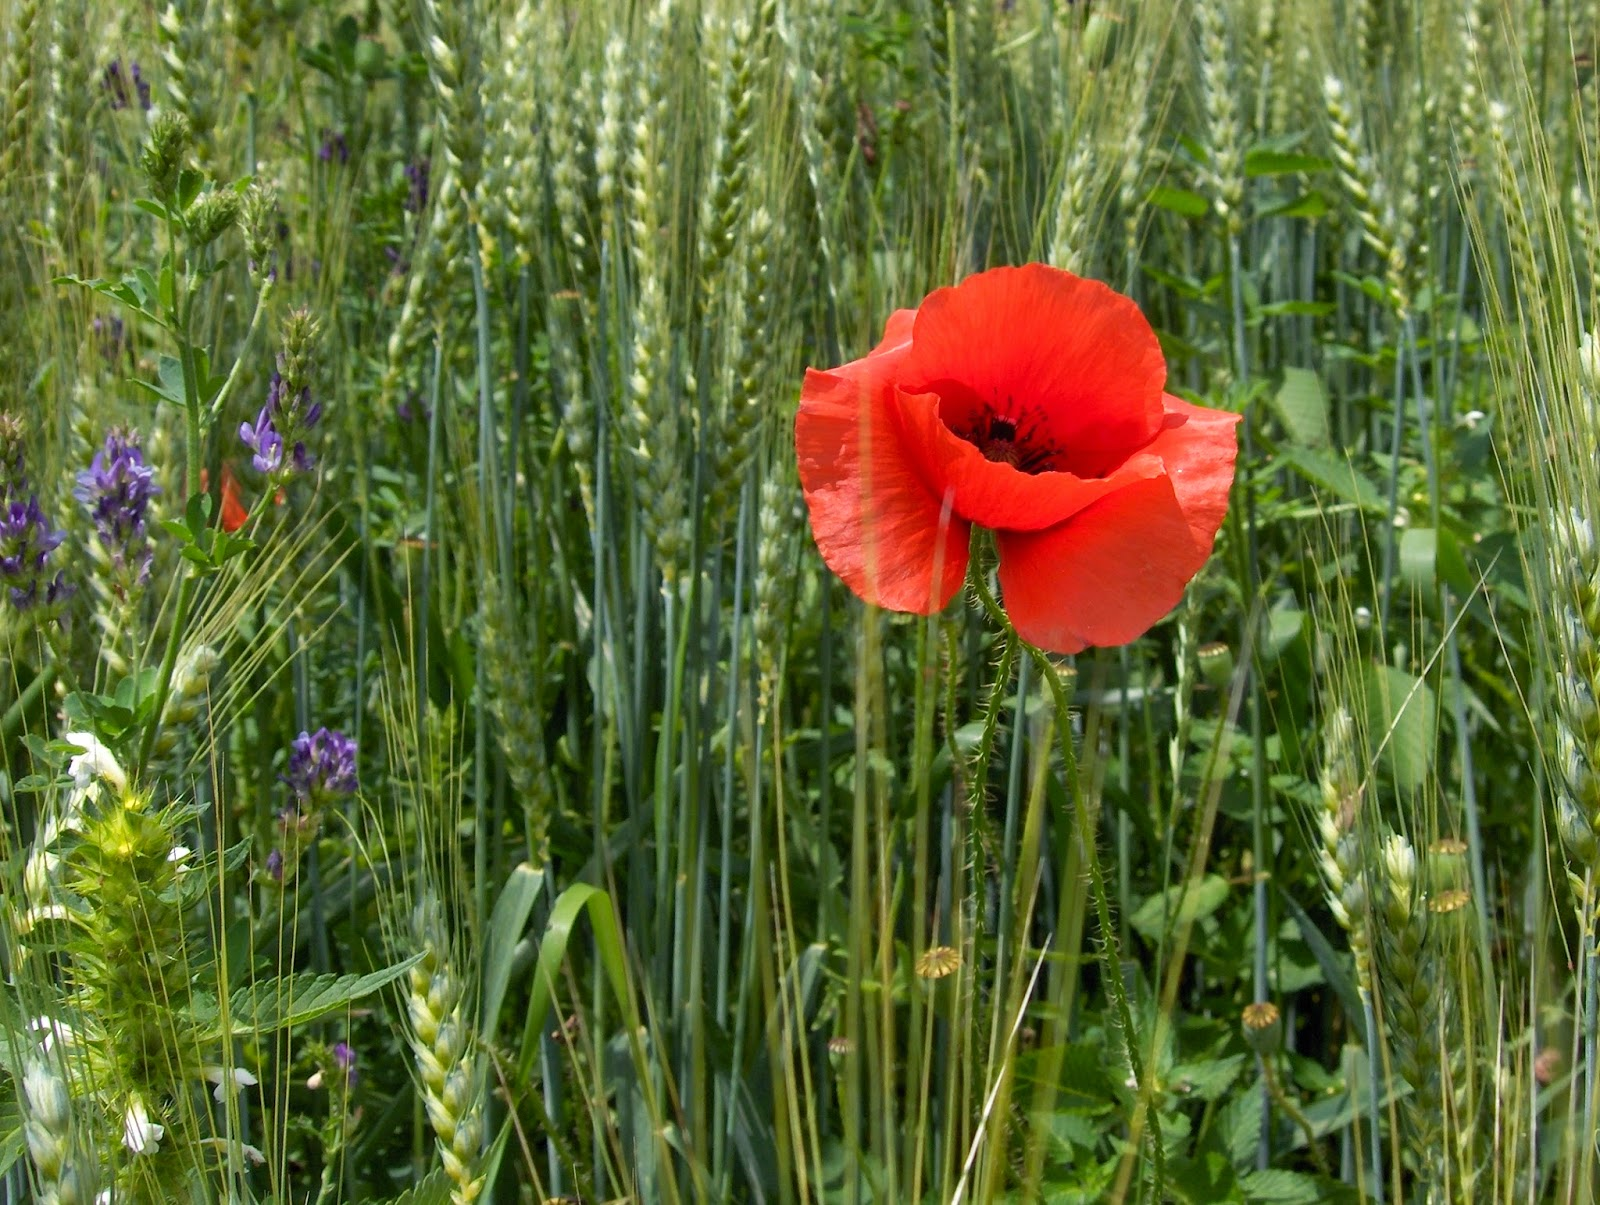 Red poppy ina field